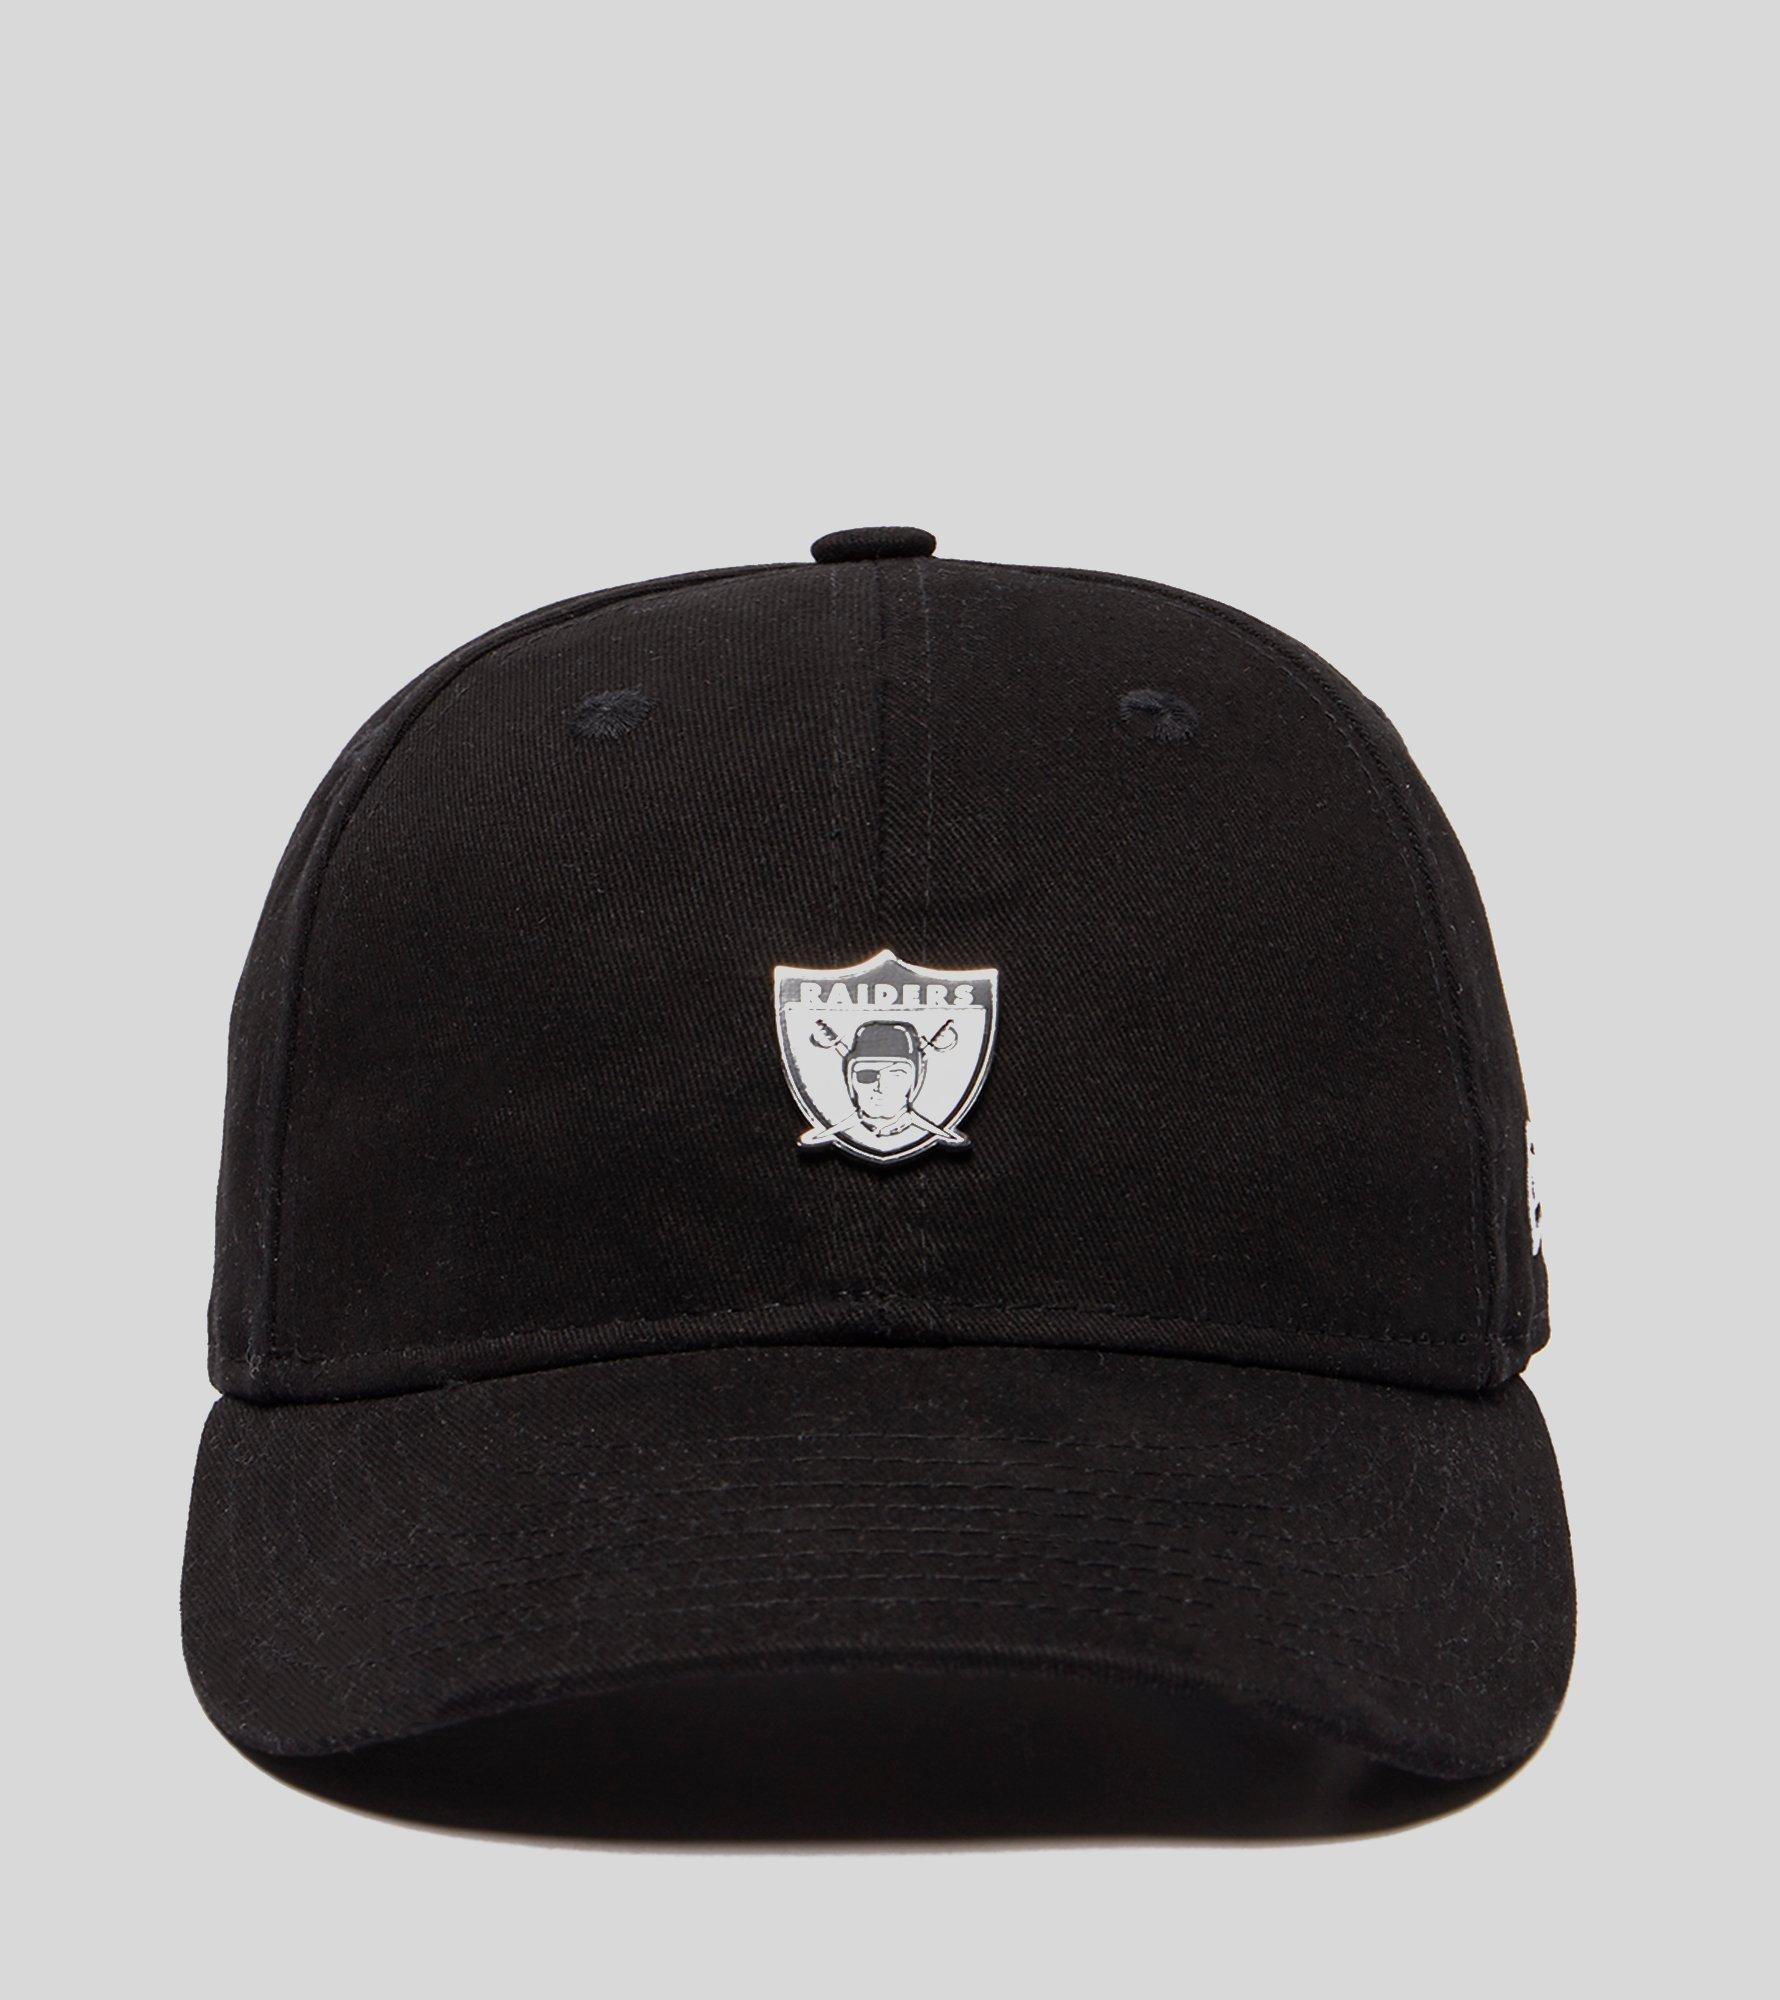 5378af3928d Lyst - KTZ 9fifty Low Pin Raiders Cap in Black for Men